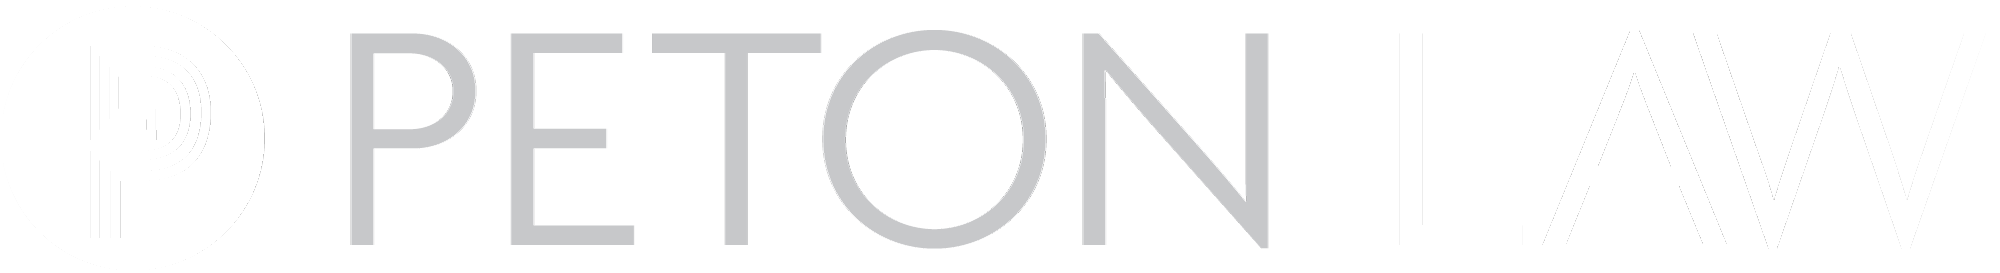 Peton Law Logo Reversed